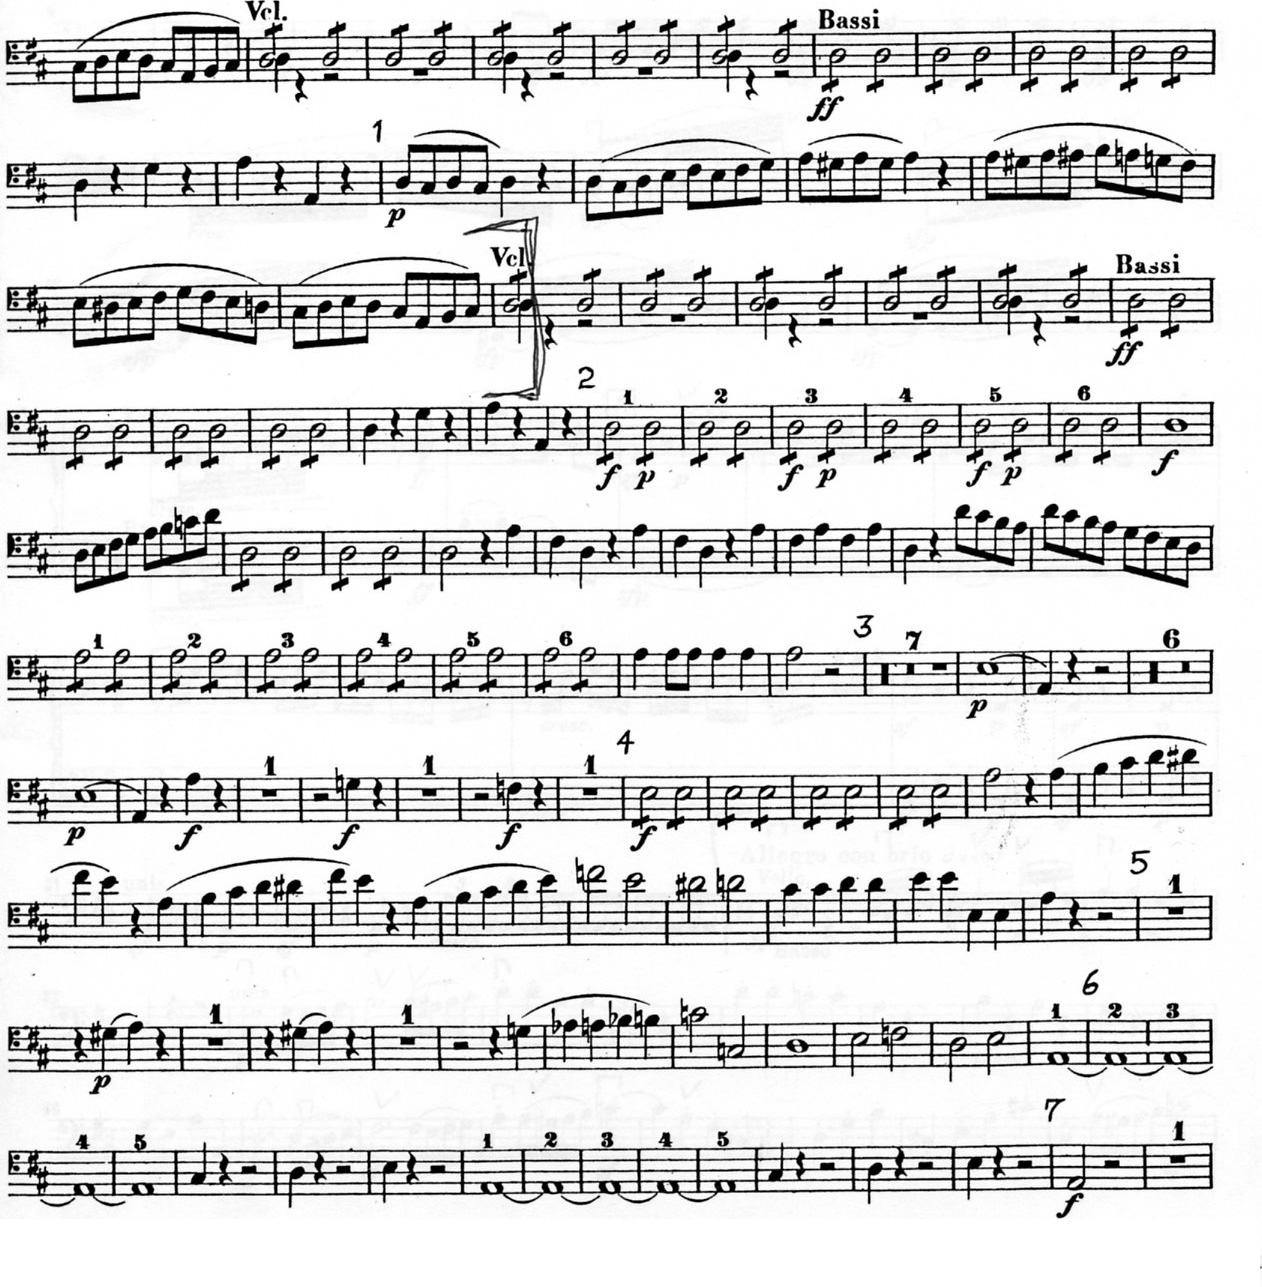 Sheet Music Clipart.